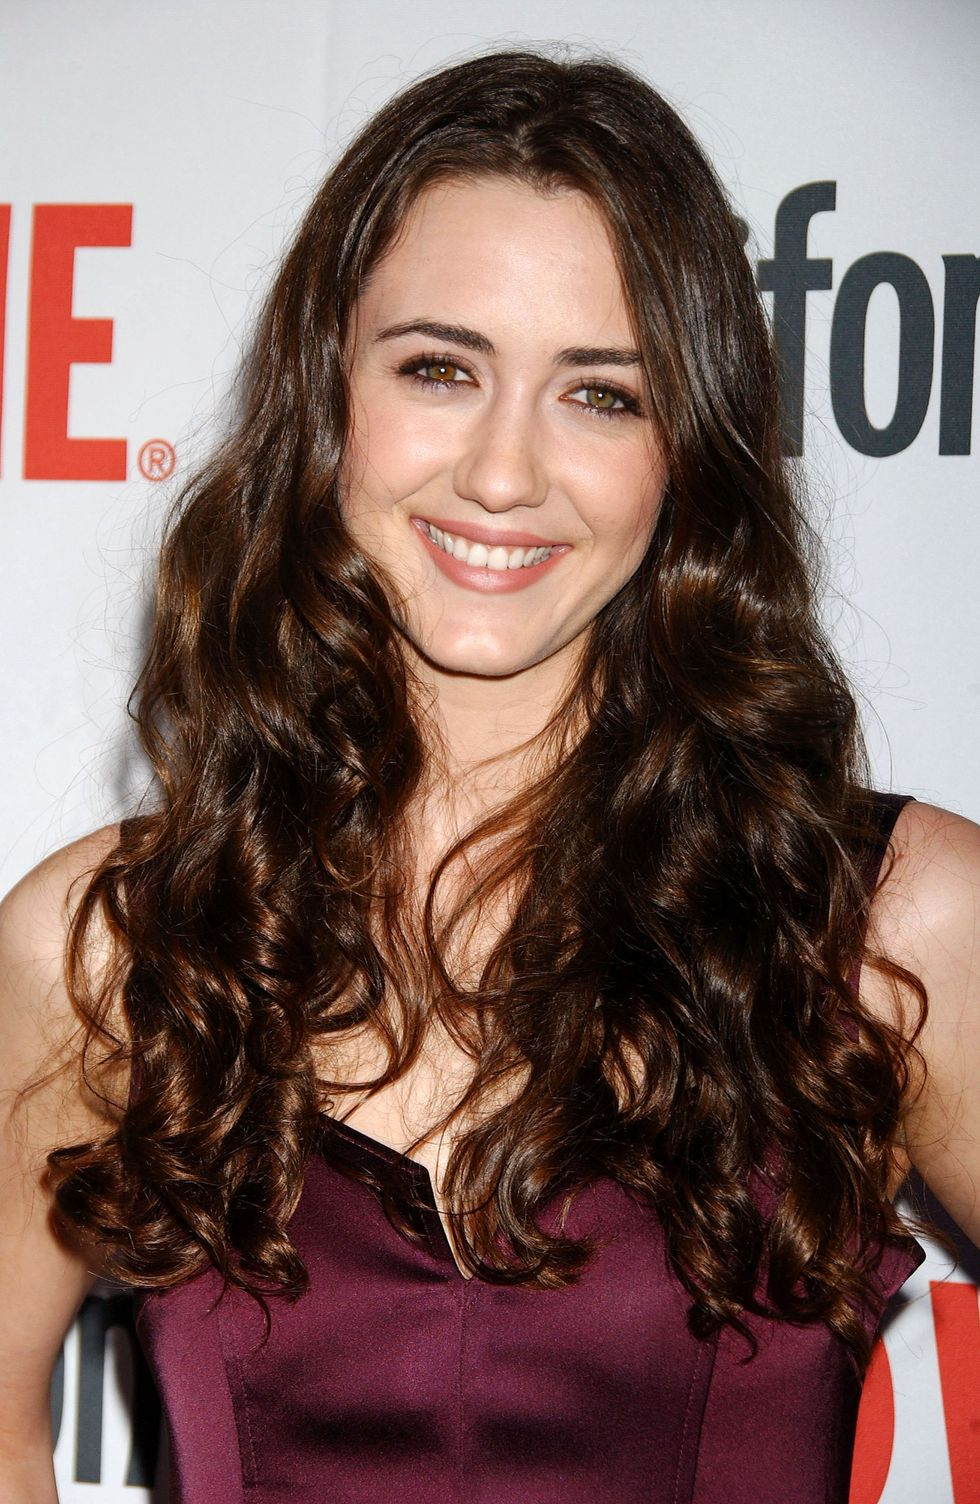 Madeline Zima Madeline Zima Cute Beautiful Girls Celebrities Pinterest